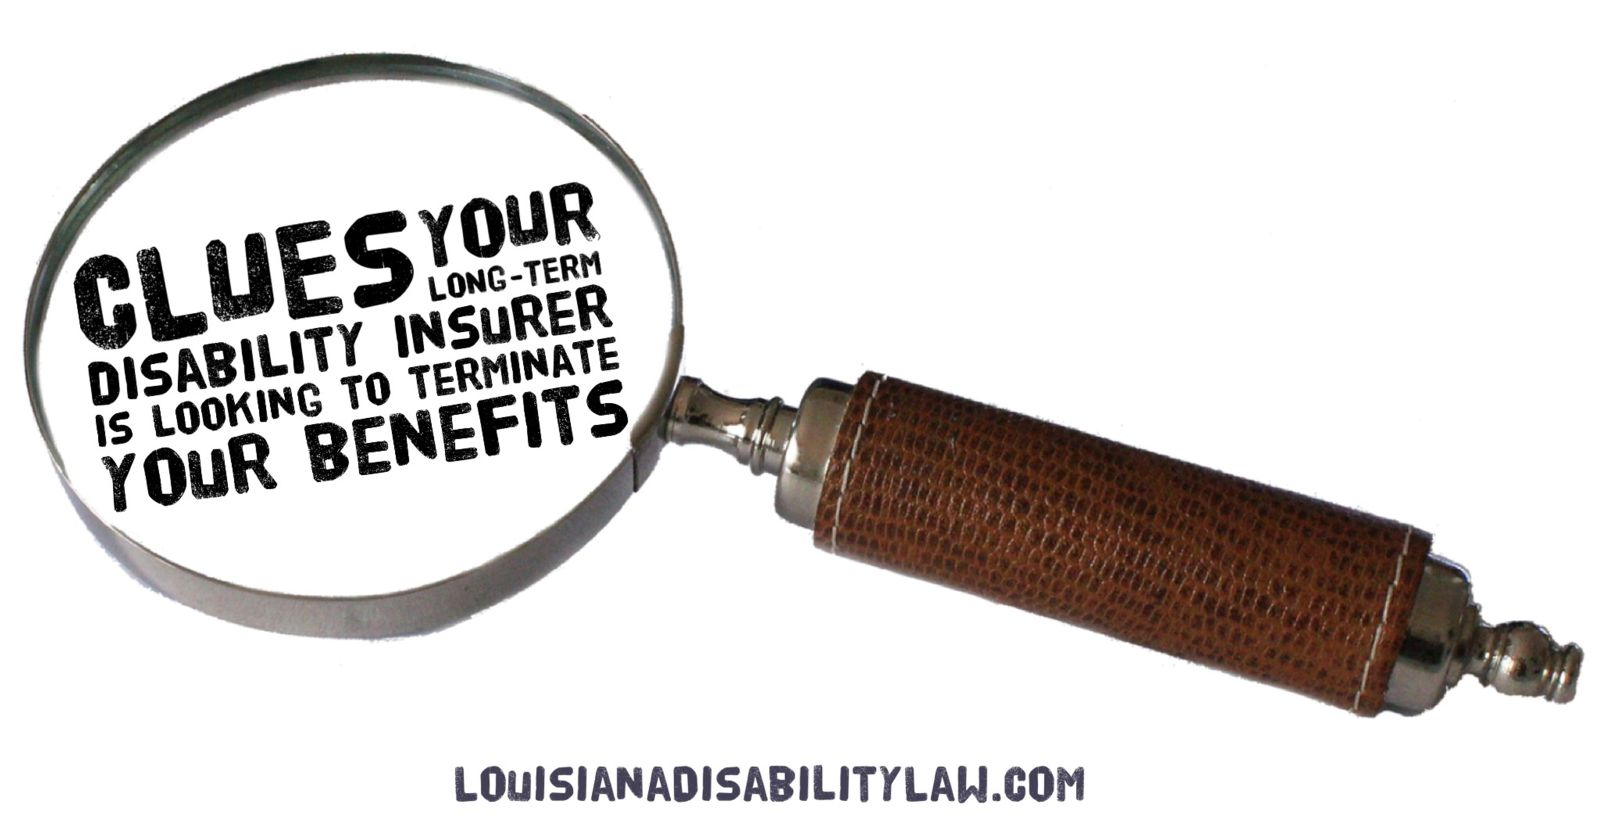 Clues your Long-Term Disability Insurer is Looking to Terminate Your Benefits